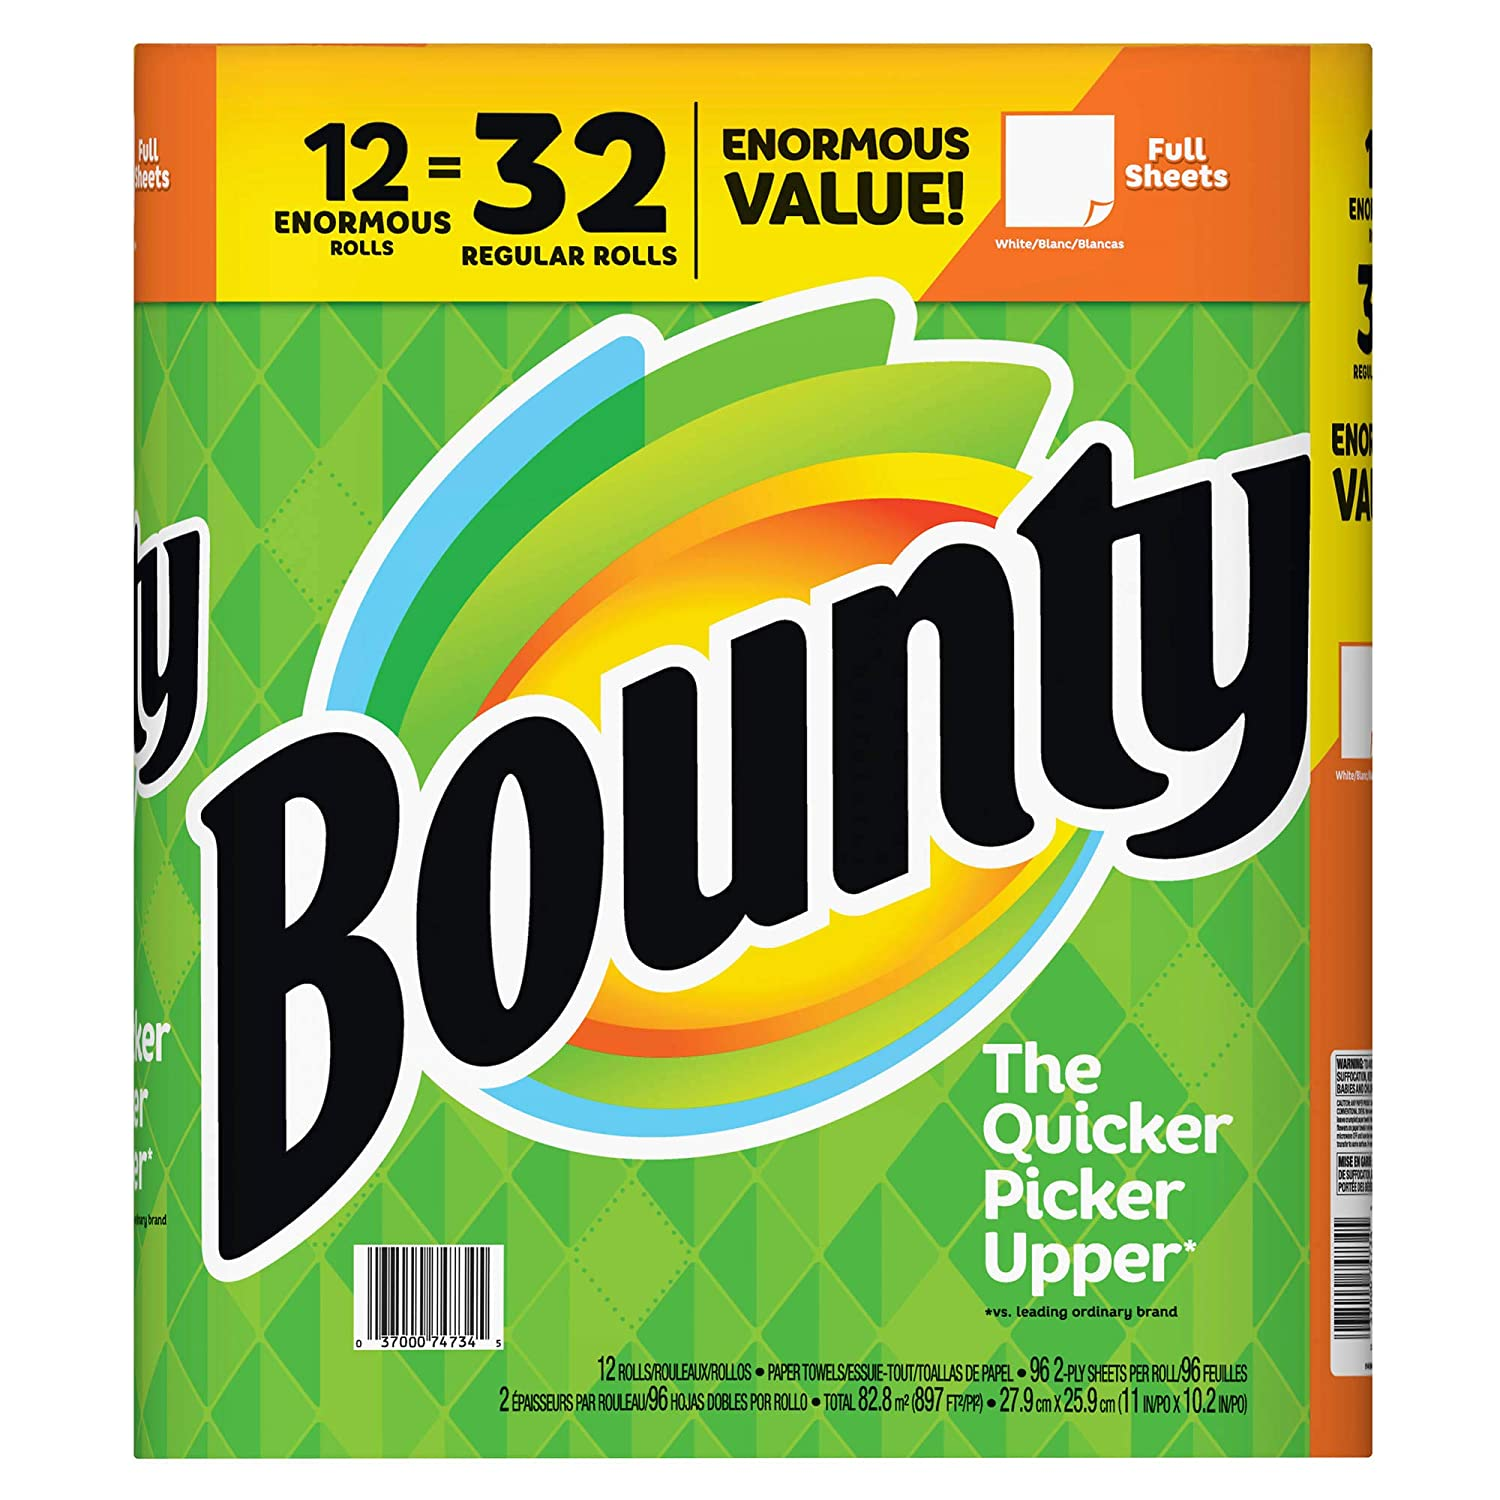 Amazon.com: Bounty Enormous Roll Paper Towels, 12 pk. - White (Pack of 2): Kitchen & Dining